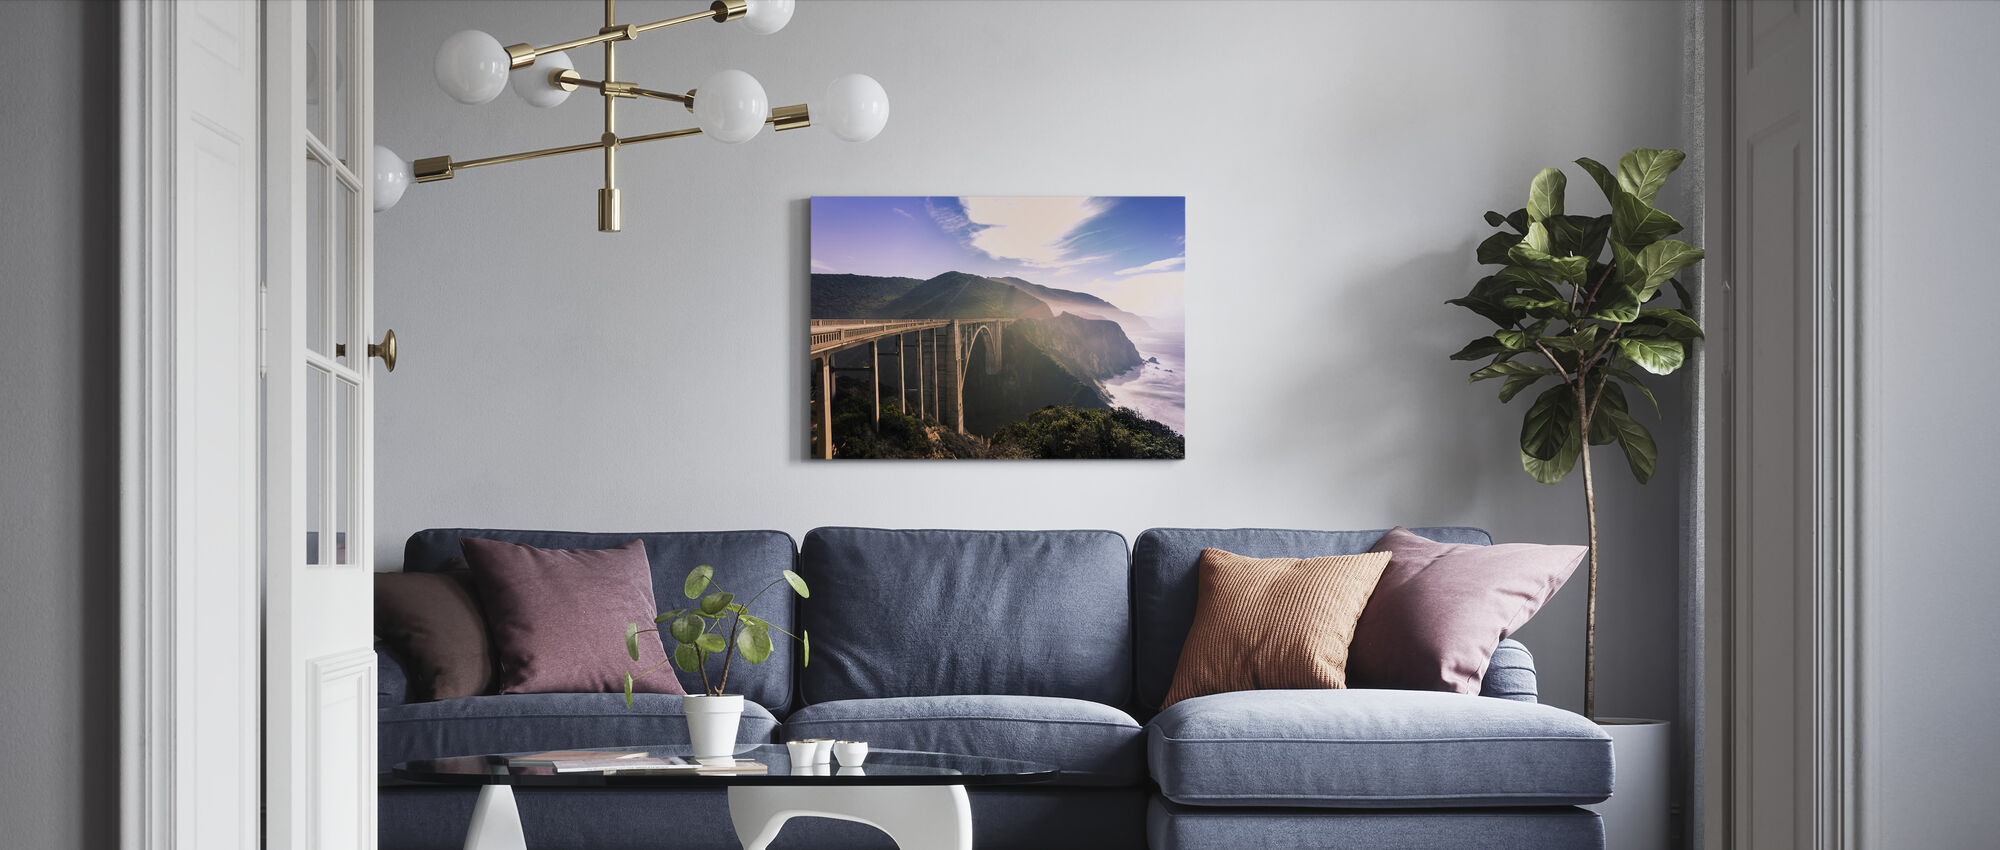 Monterey Dreams - Canvas print - Living Room